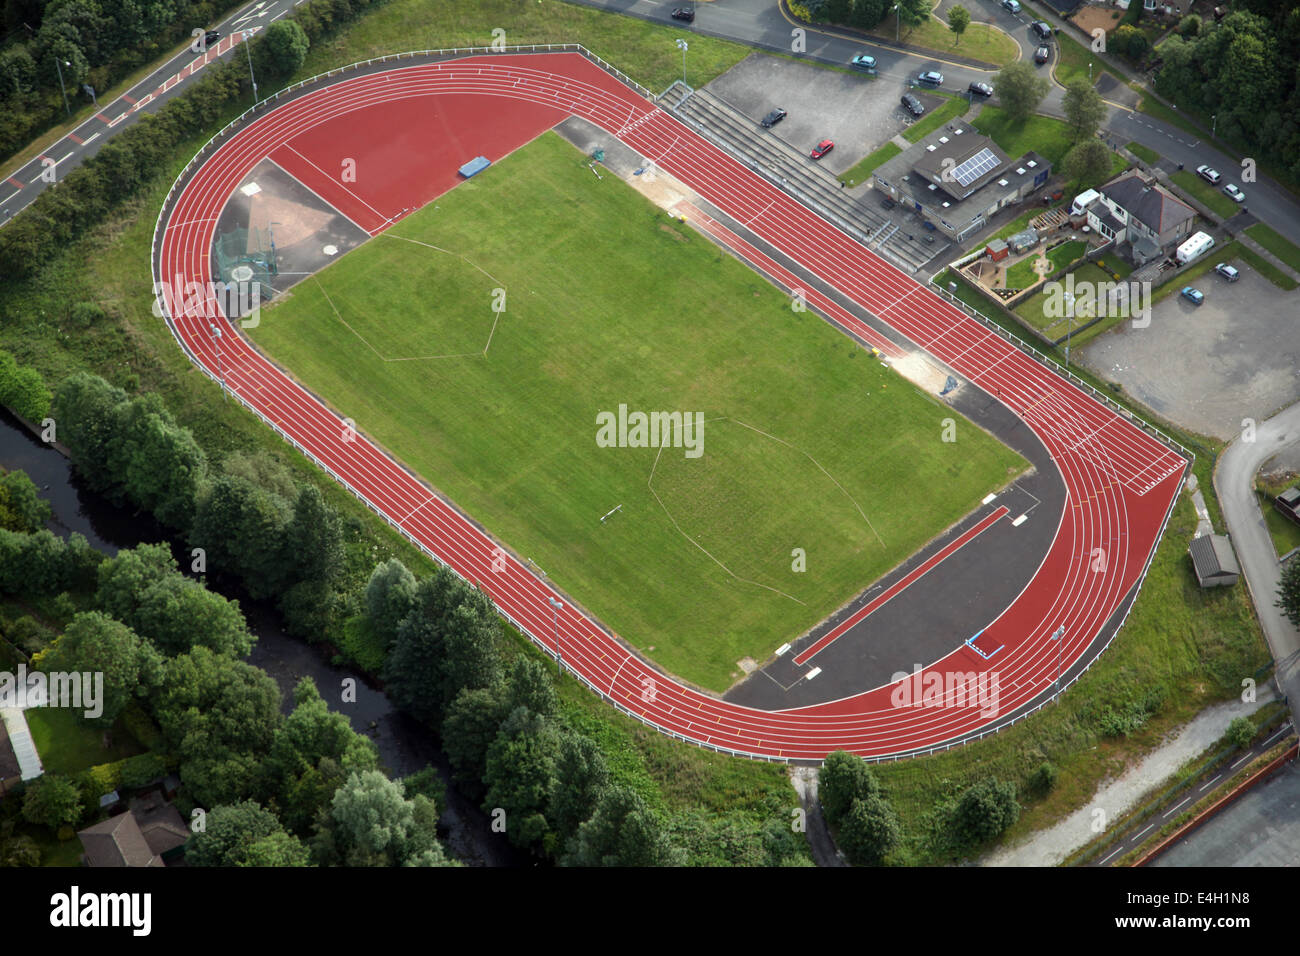 Aerial view of a red athletics running track and field. This one at Nelson, Lancashire. - Stock Image